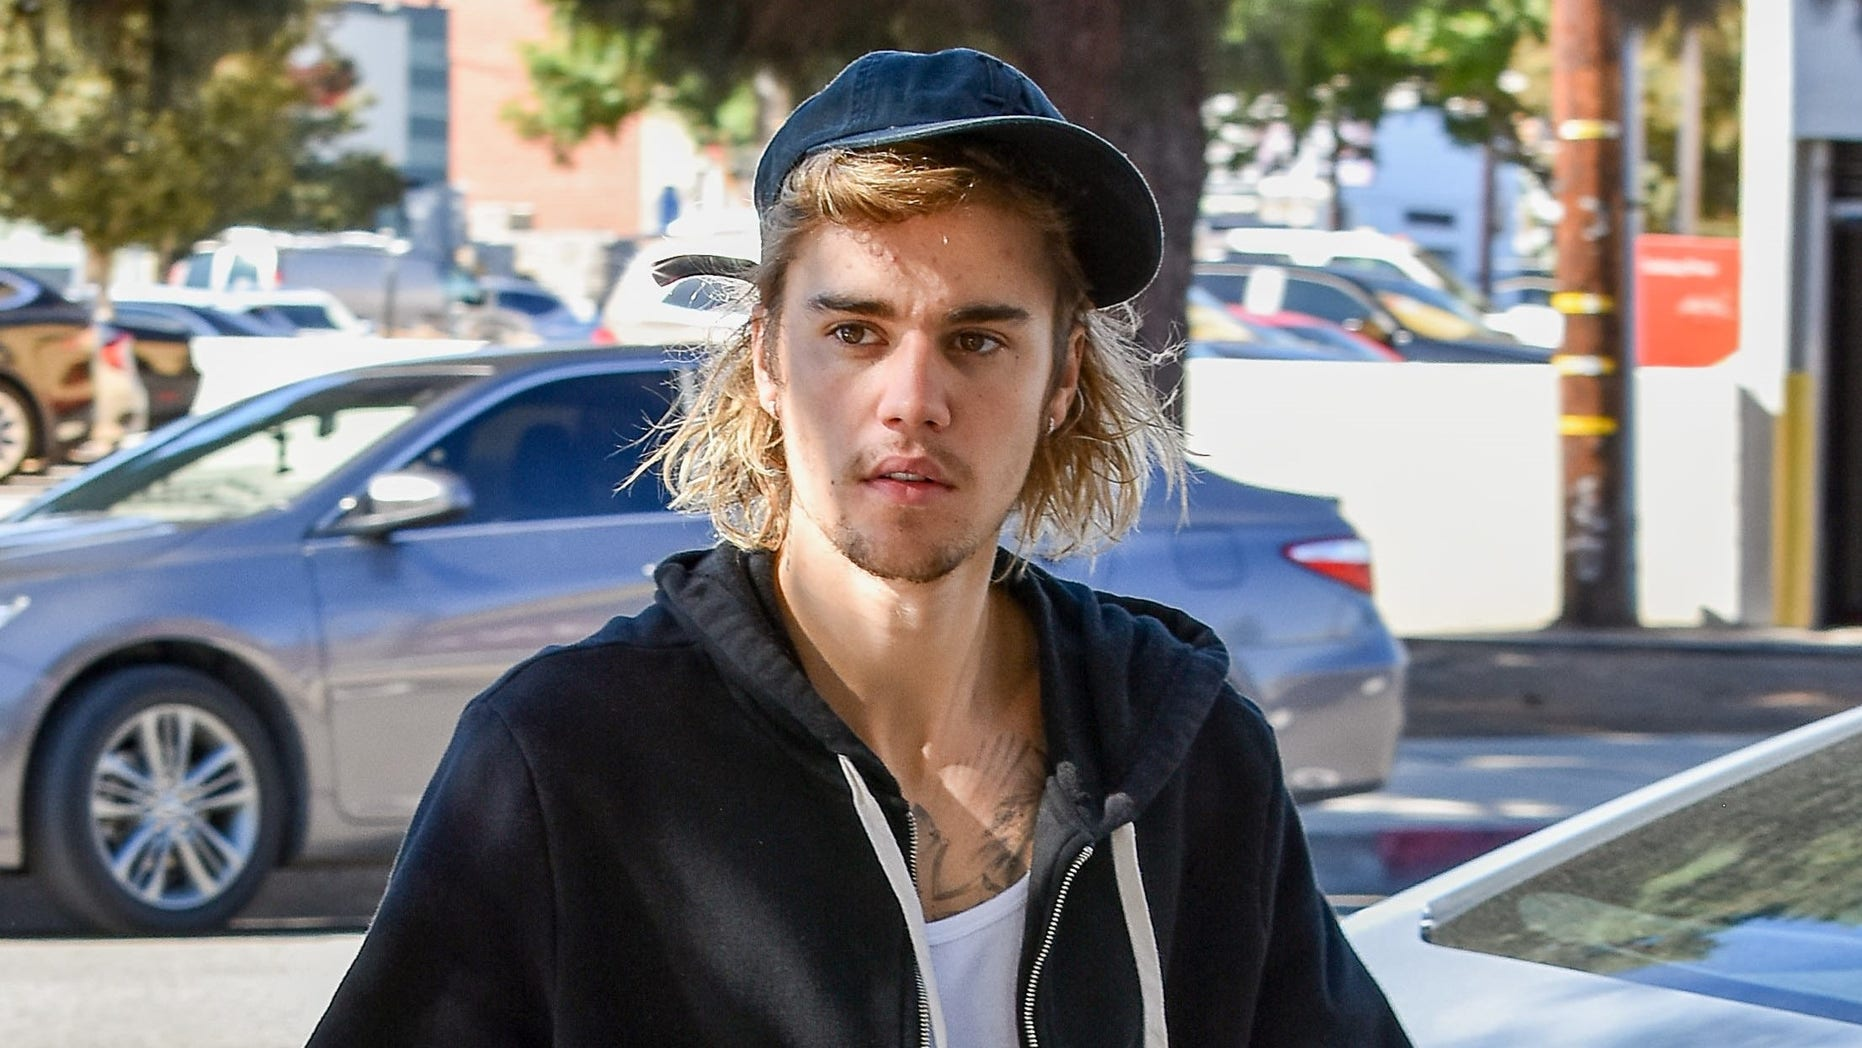 Justin Bieber Got A Face Tattoo